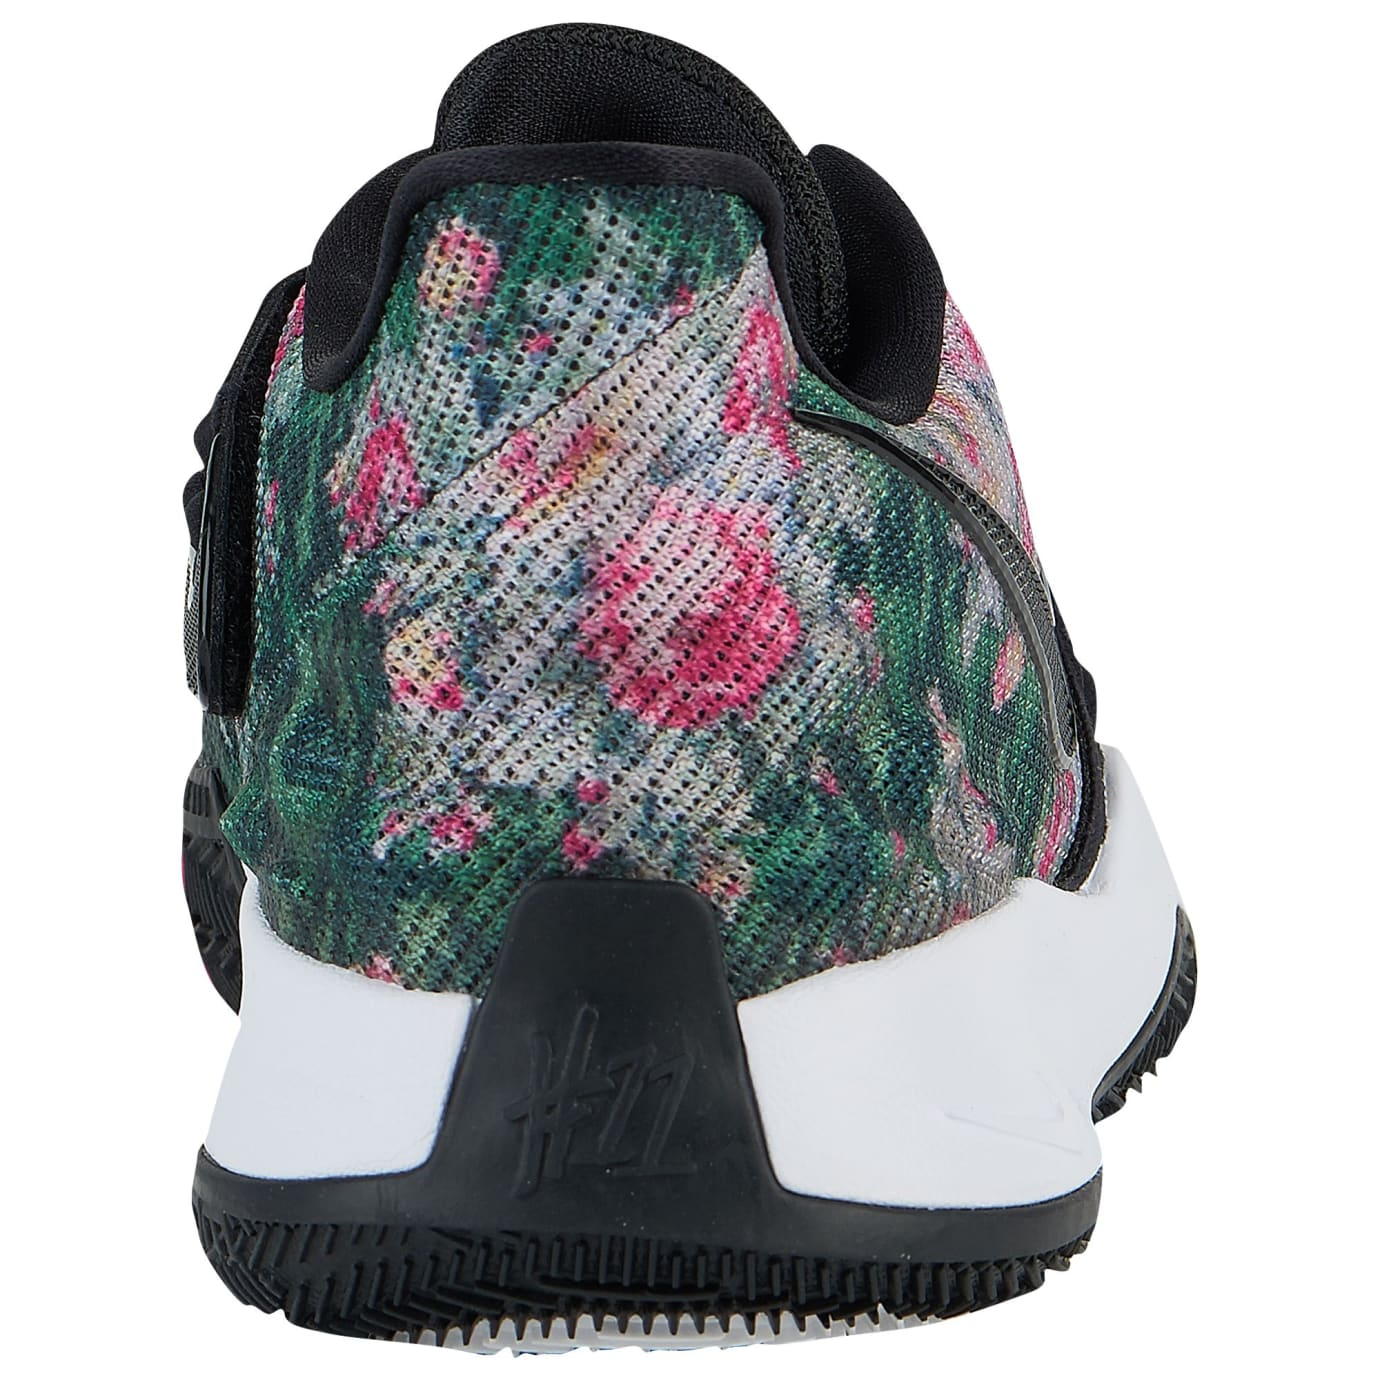 23a002a6d273 Nike Kyrie Low Floral Release Date AO8979-002 Heel